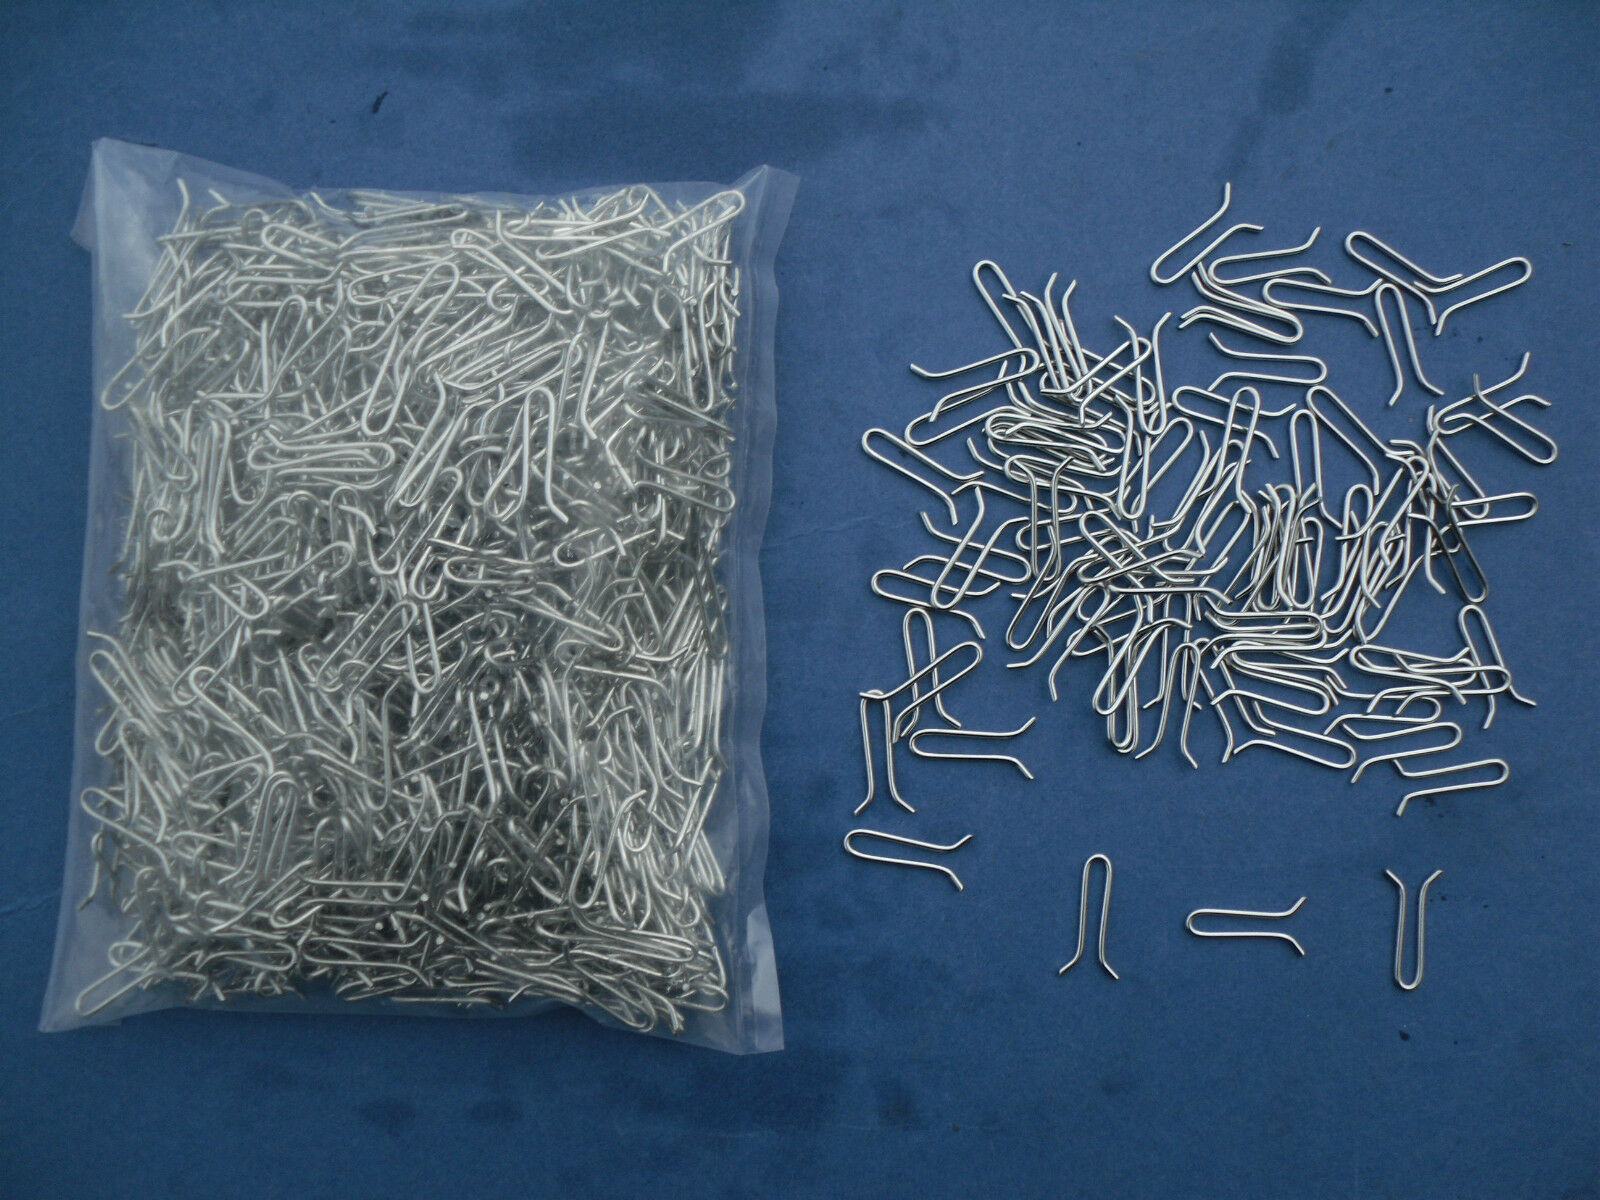 500 STAINLESS STEEL LEAD MAKING LOOPS FOR SEA CARP FISHING LEADS WEIGHTS MOULDS